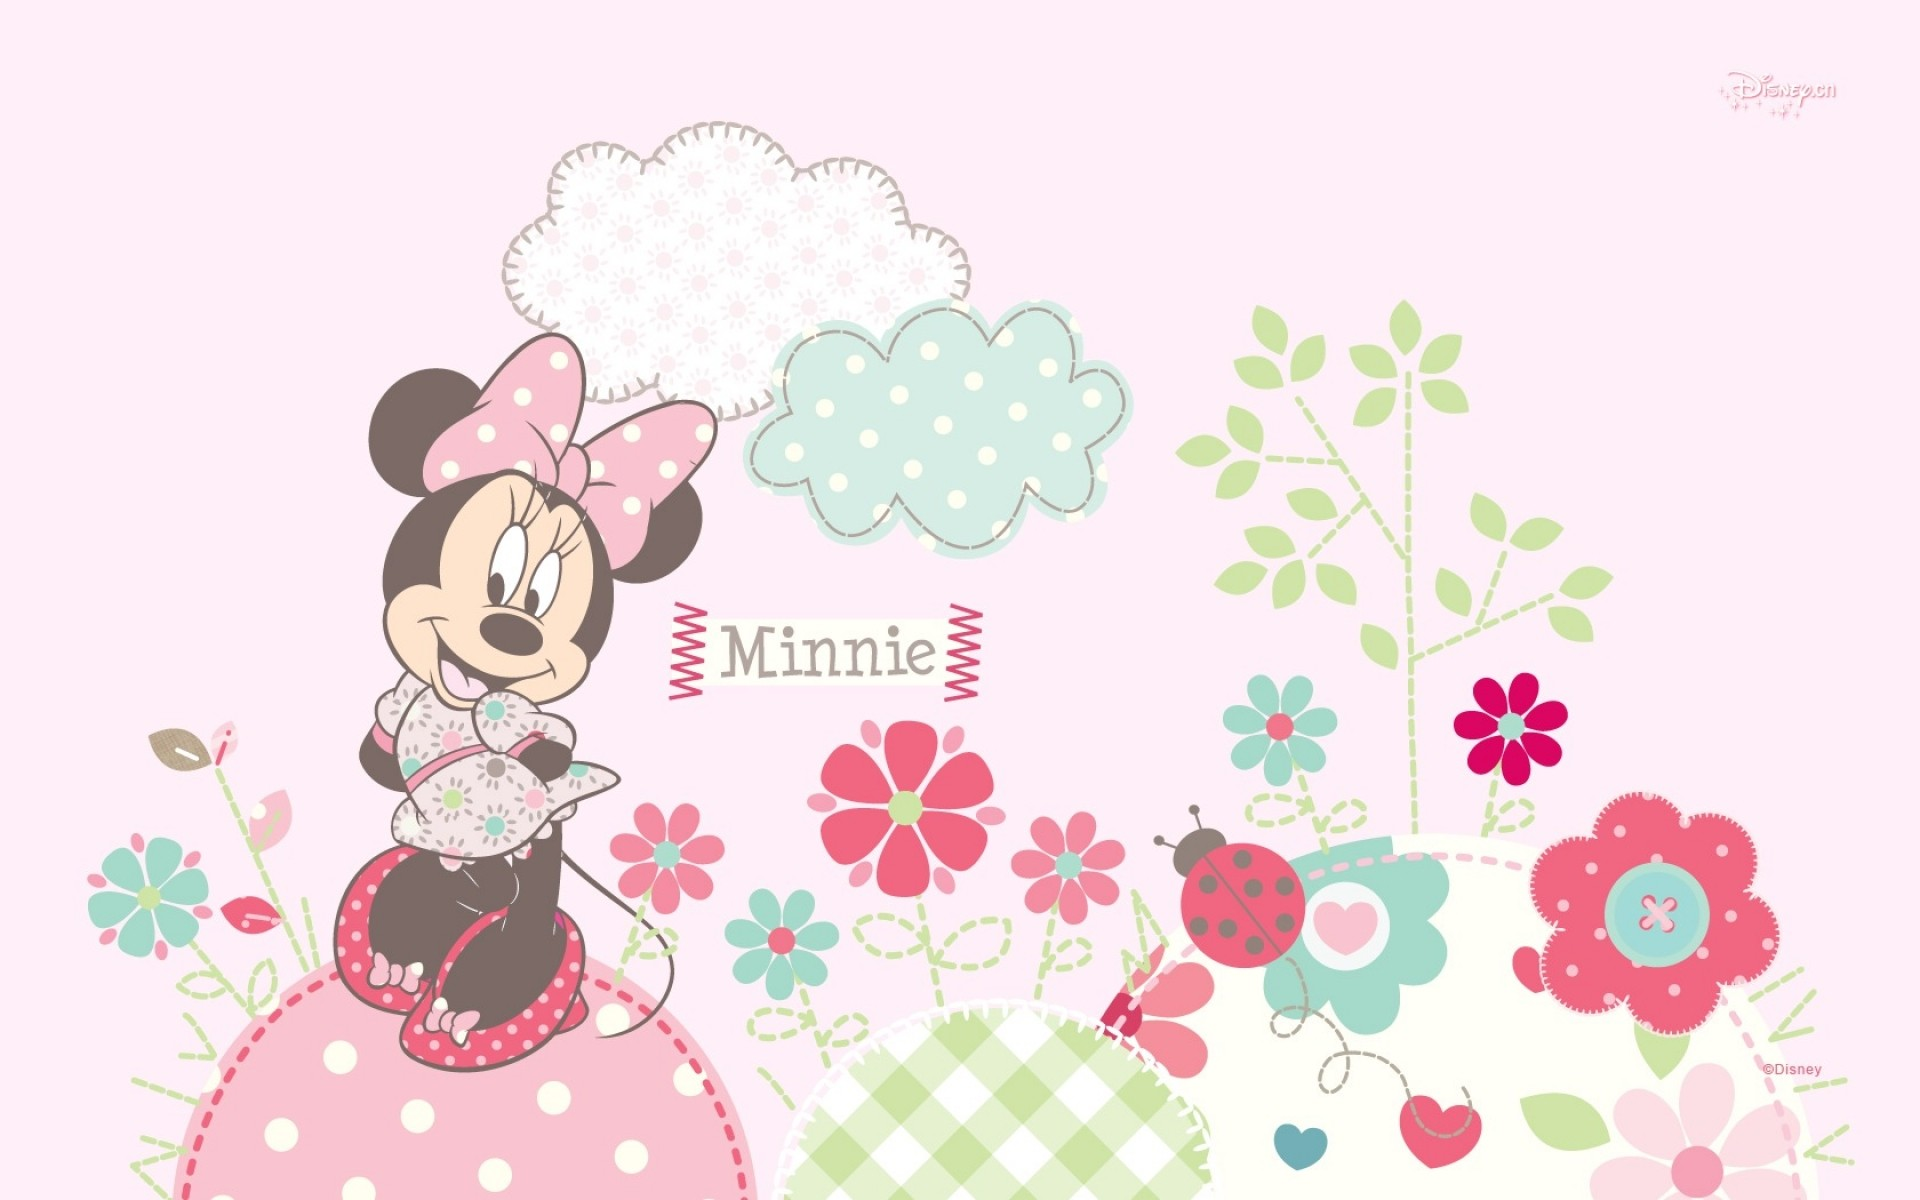 Minnie Mouse Wallpaper 1 Download Free Awesome Full HD Wallpapers